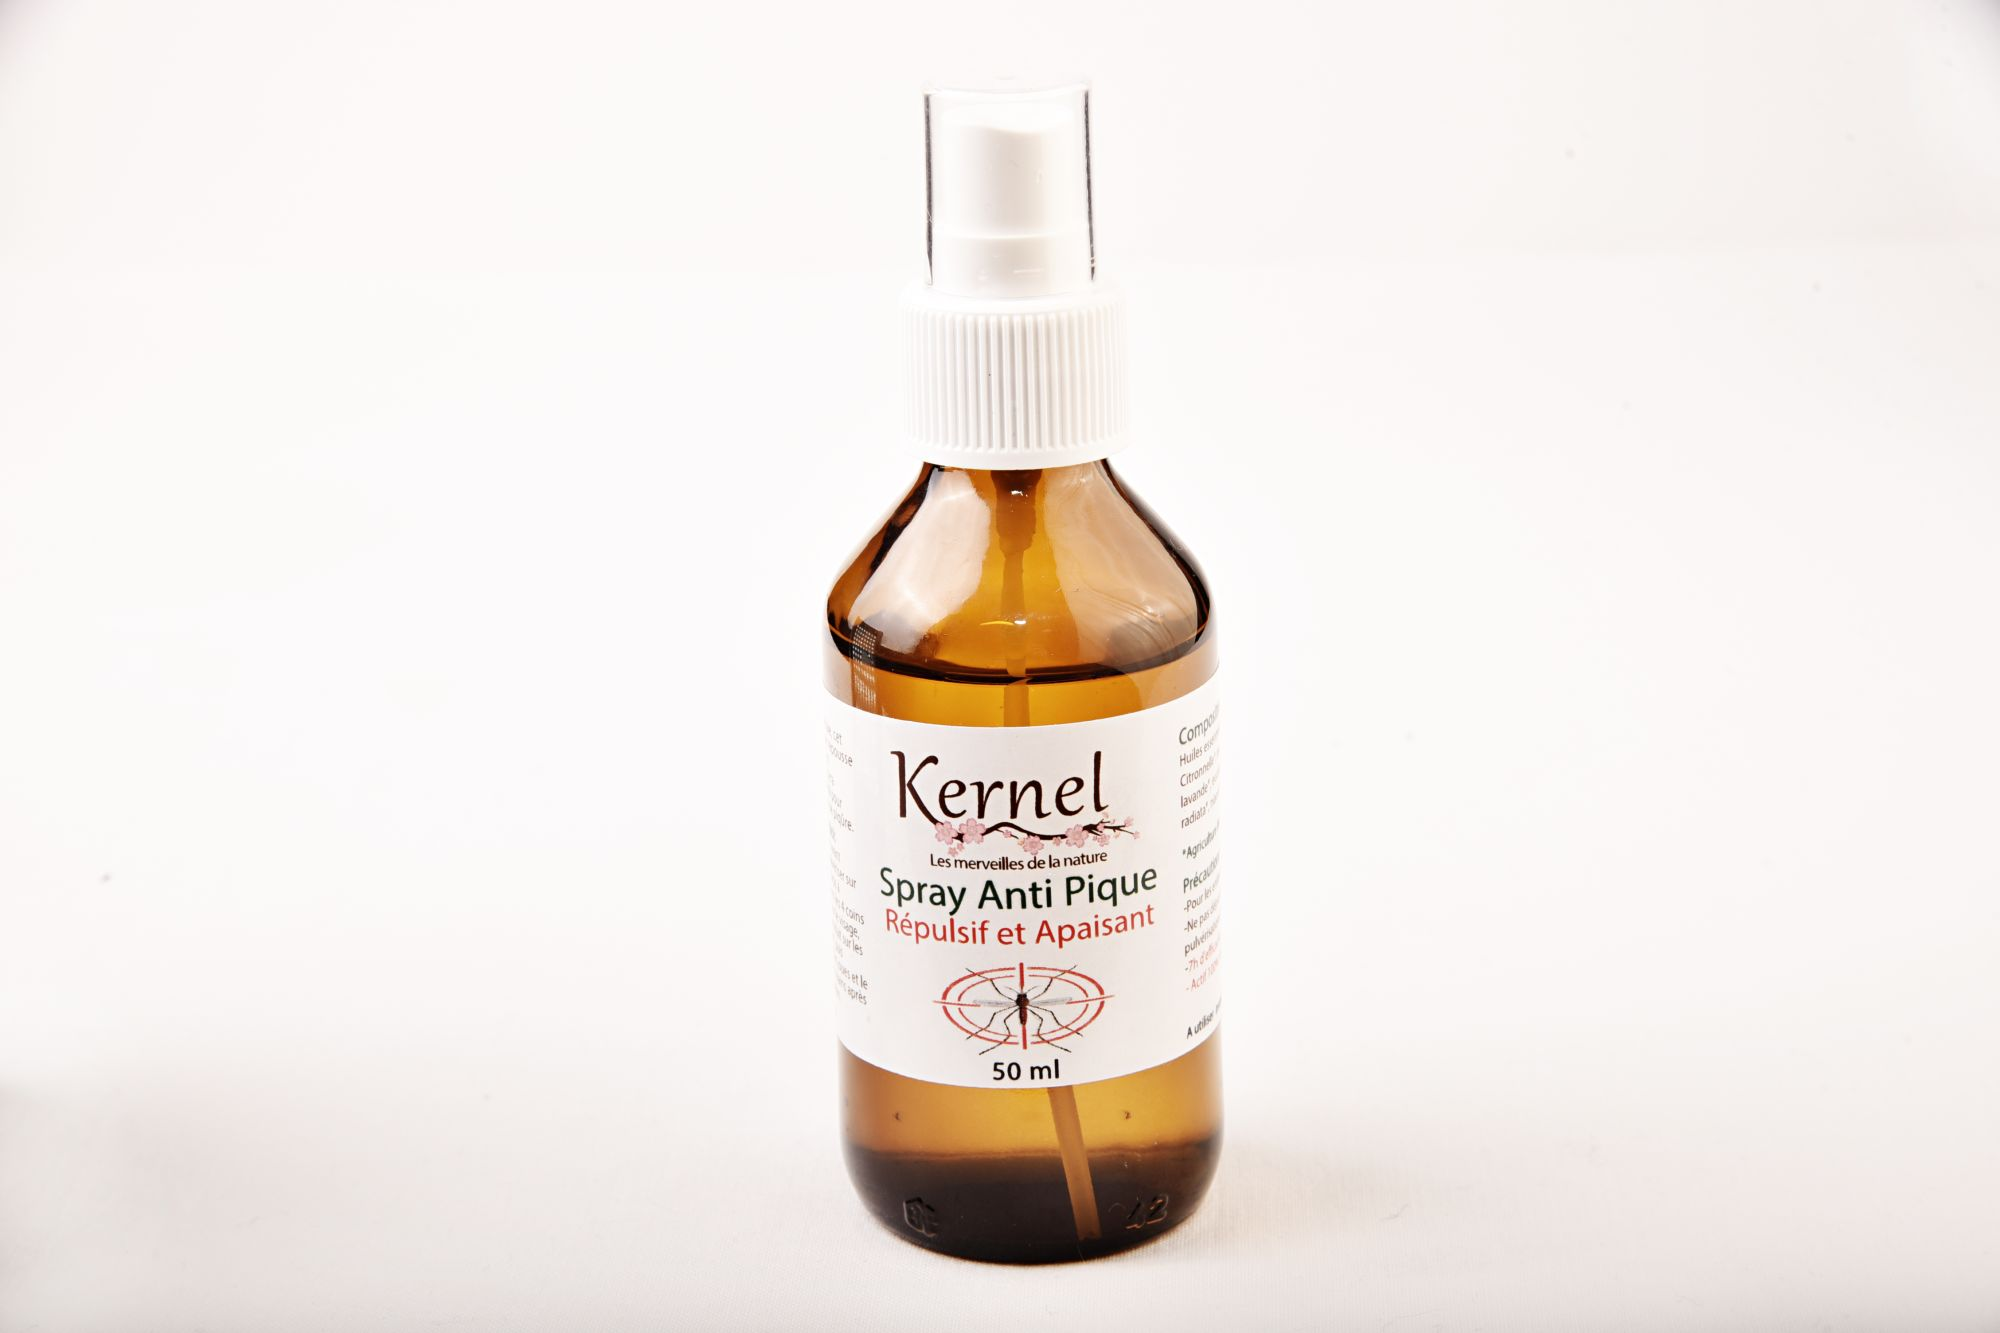 Kernel Organic Spray anti pique 100 ml (Anti sting repellent and soothing spray) :